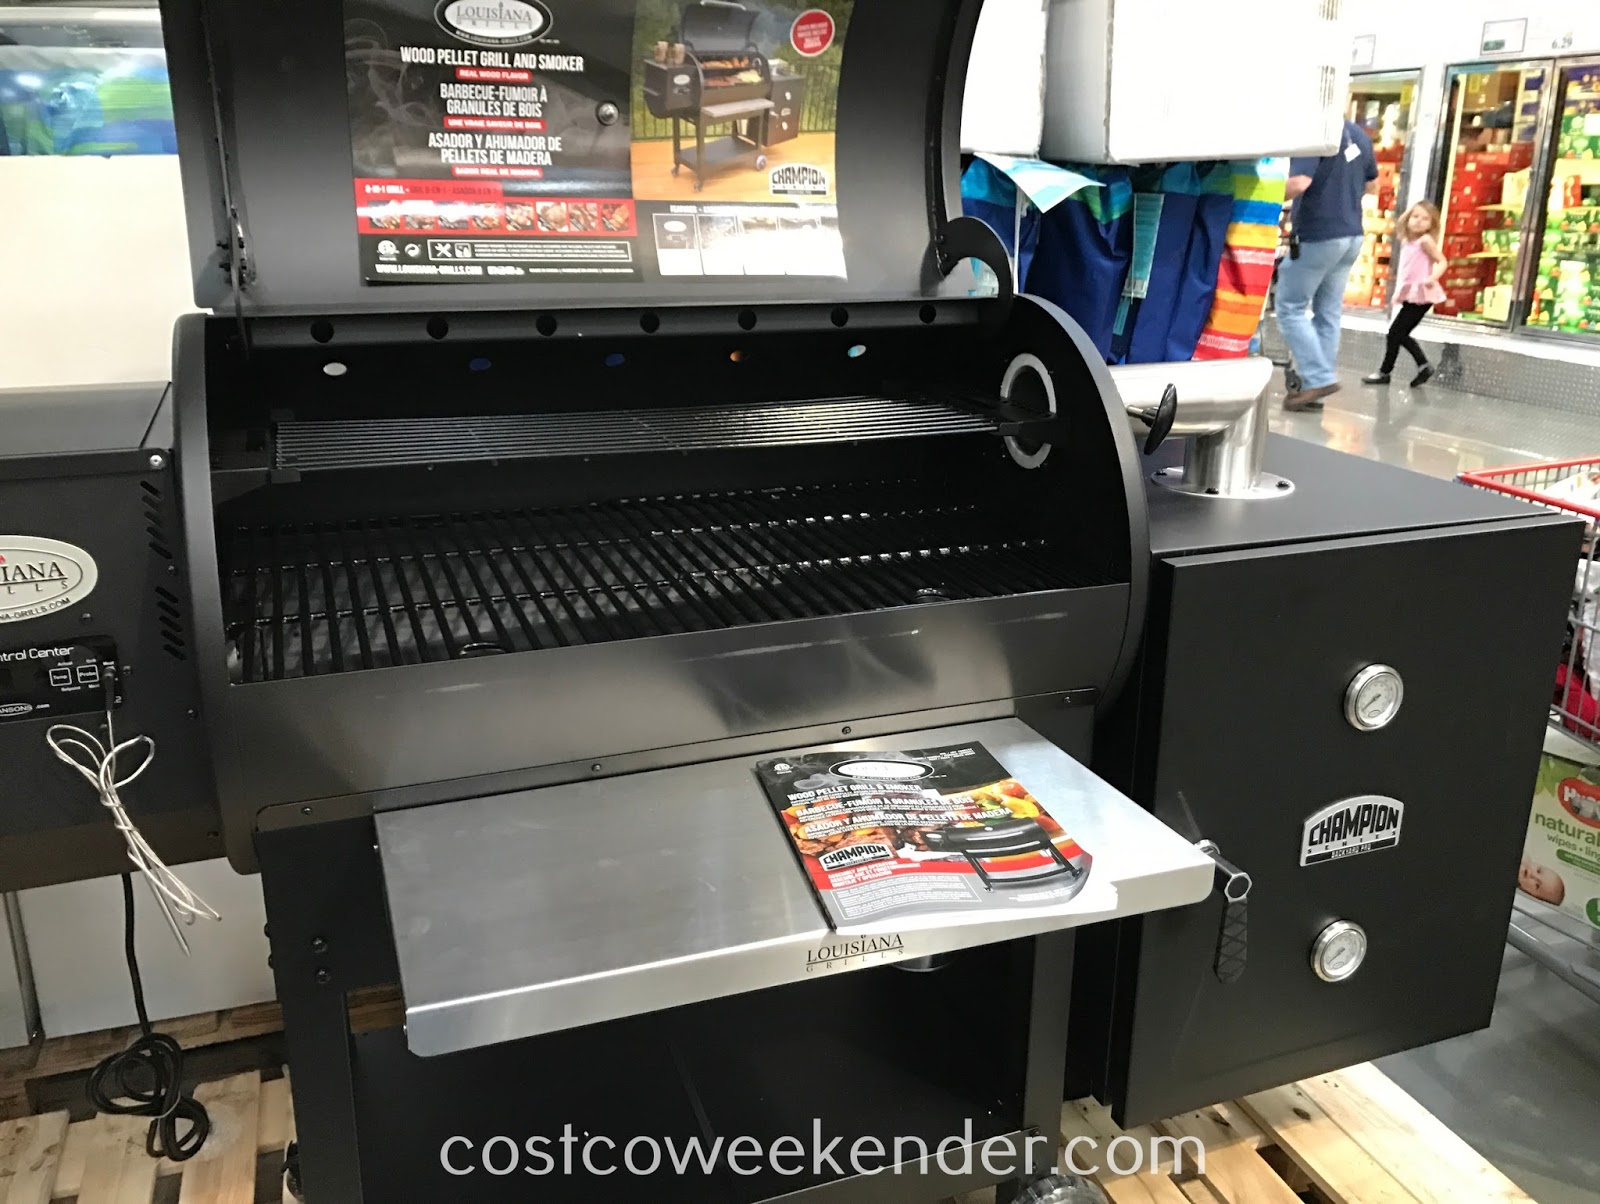 If you love bbqs, you'll love the Louisiana Grills Wood Pellet Grill and Smoker (model 60901)